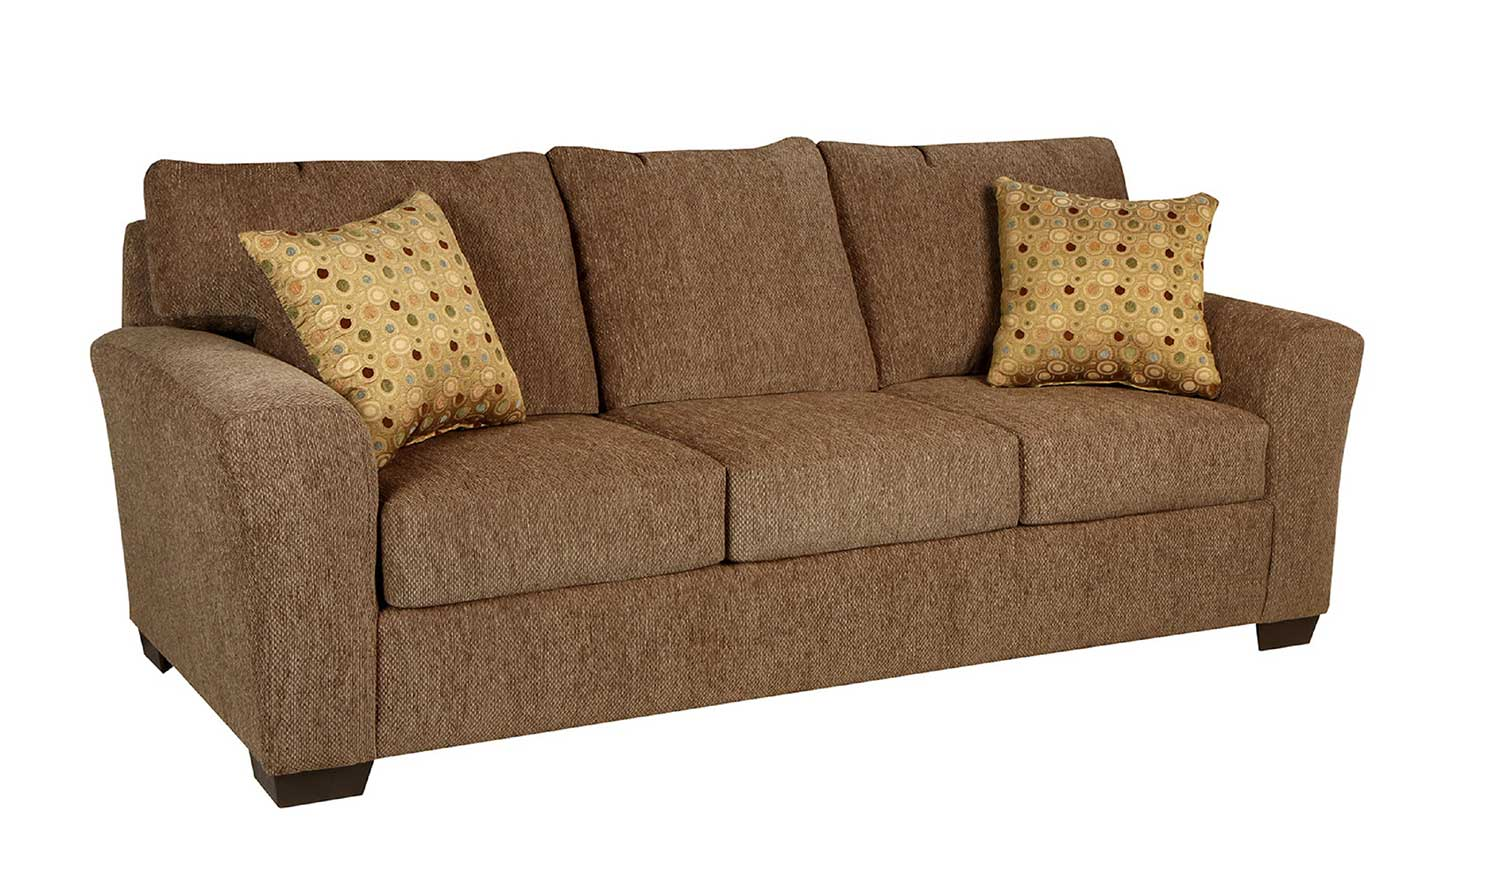 kenton fabric sofa parchment single armchair bed chelsea home chf 782490 03tbk at homelement